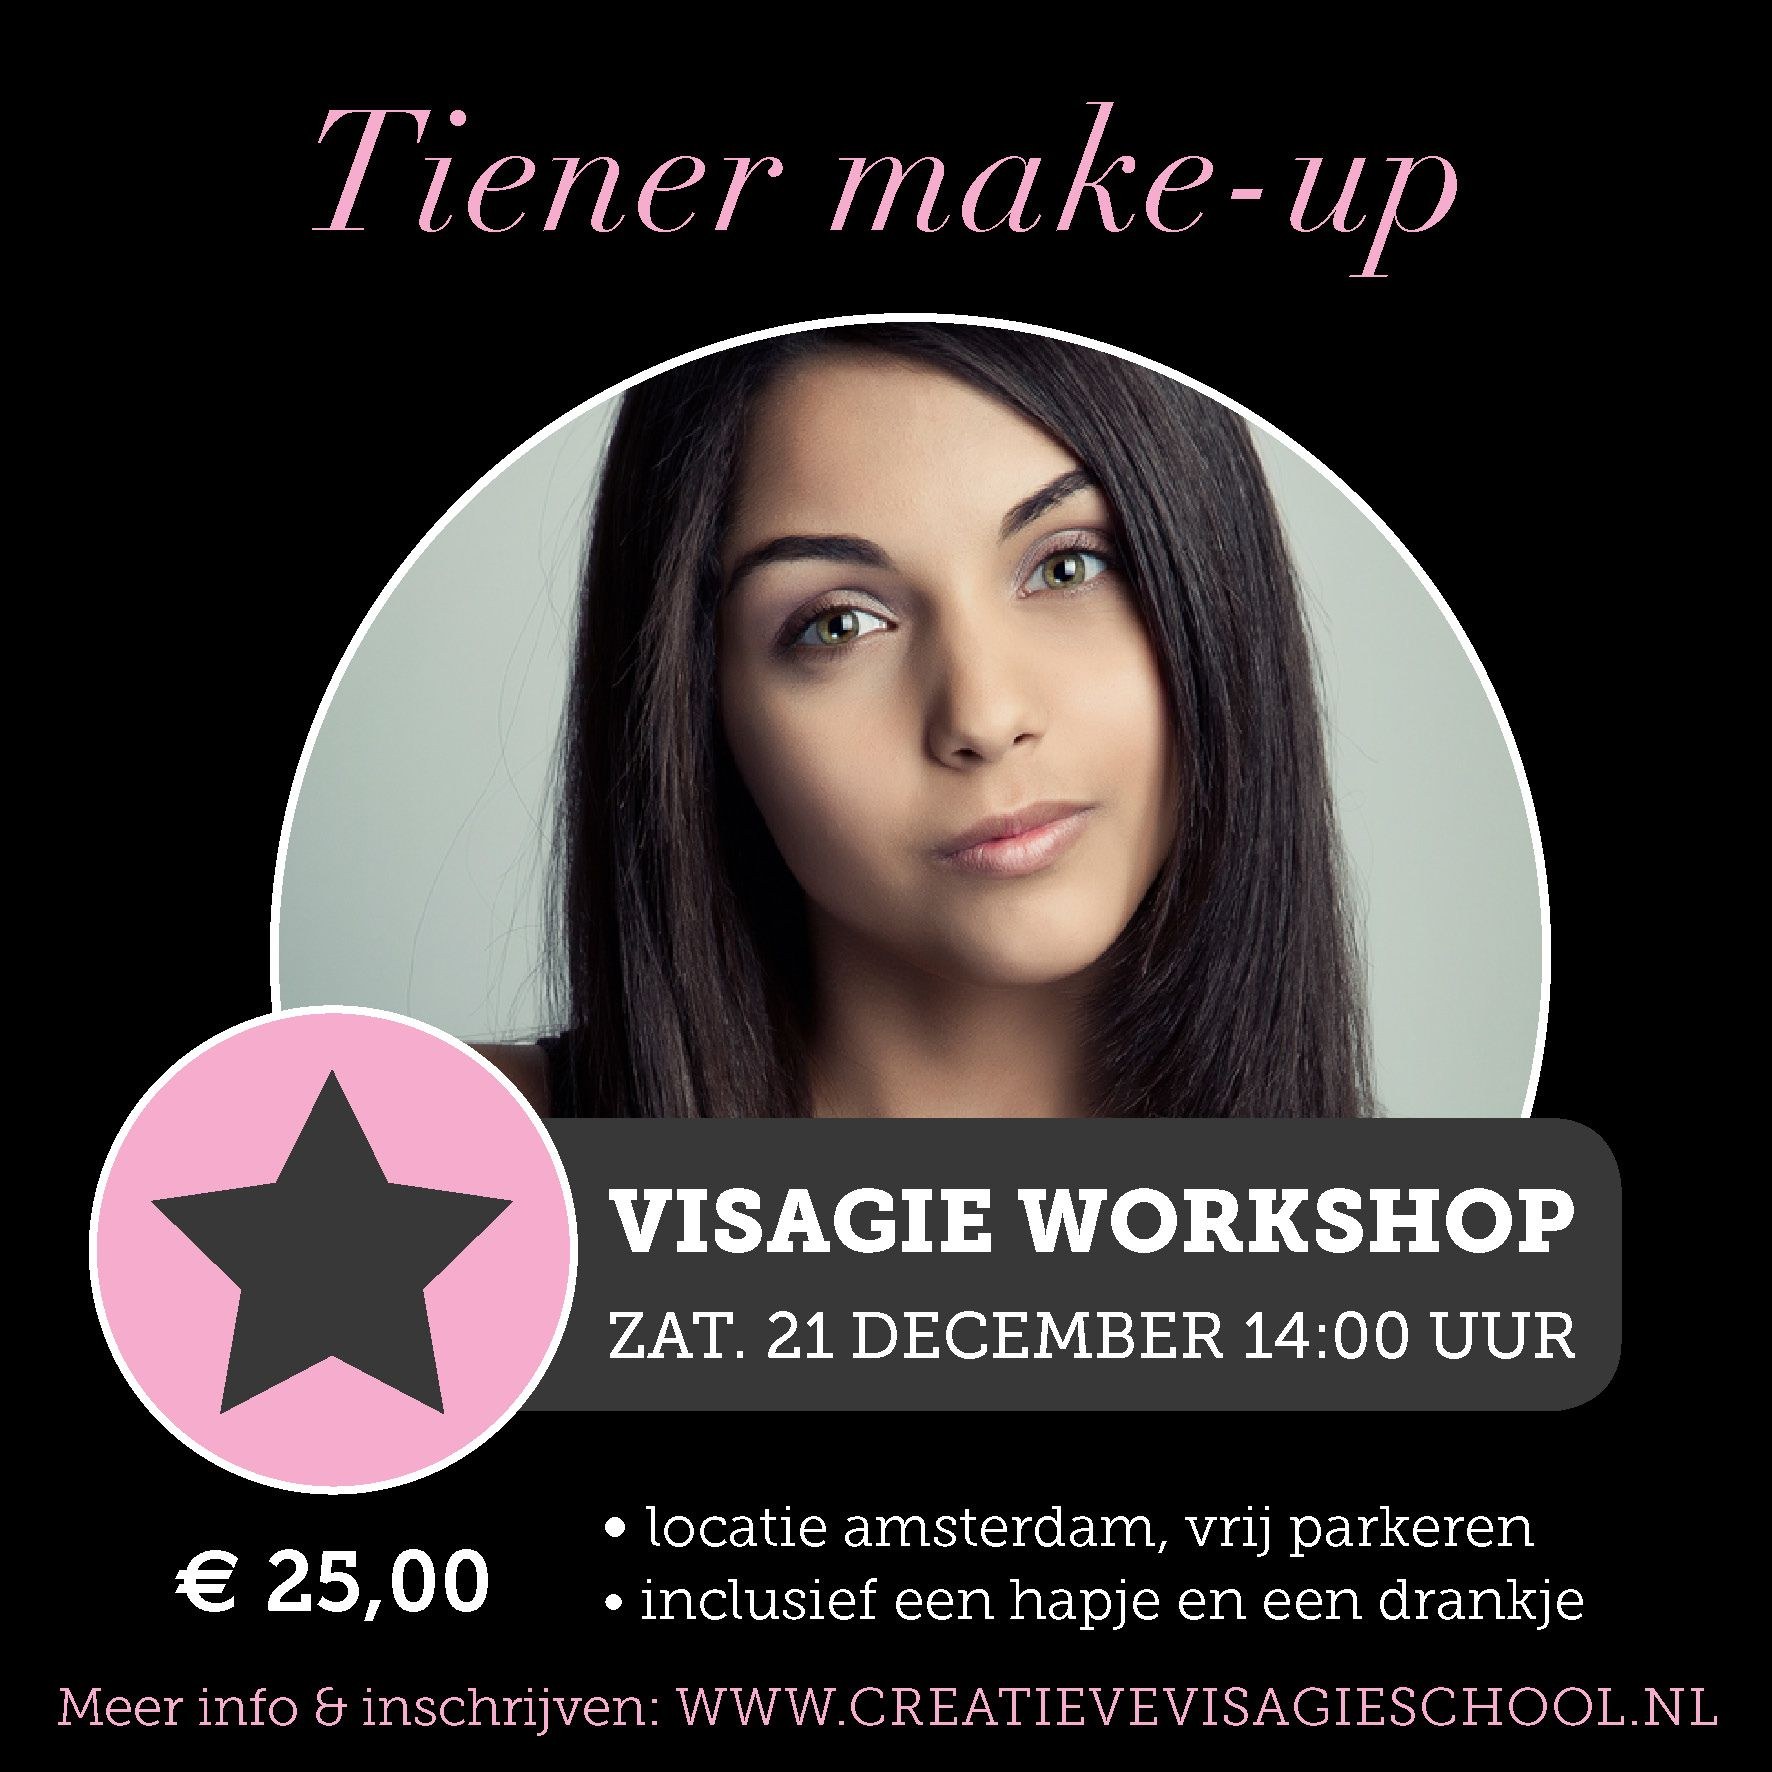 Visagieworkshop Amsterdam Thema: Tiener make-up www.creatievevisagieschool.nl